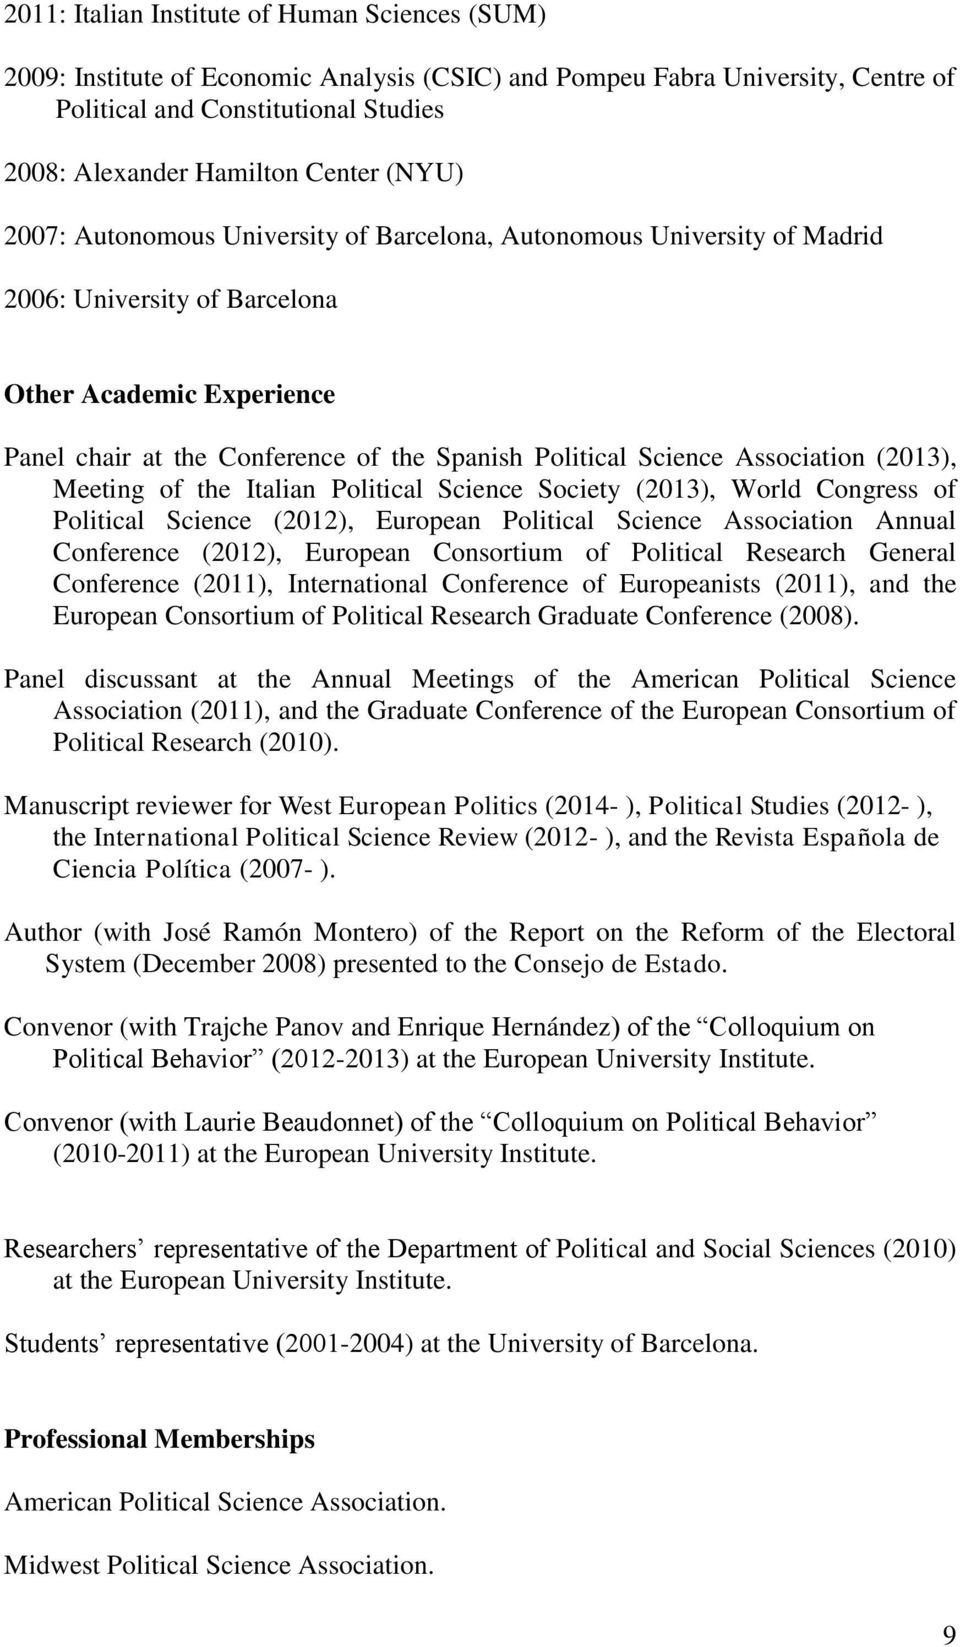 Association (2013), Meeting of the Italian Political Science Society (2013), World Congress of Political Science (2012), European Political Science Association Annual Conference (2012), European